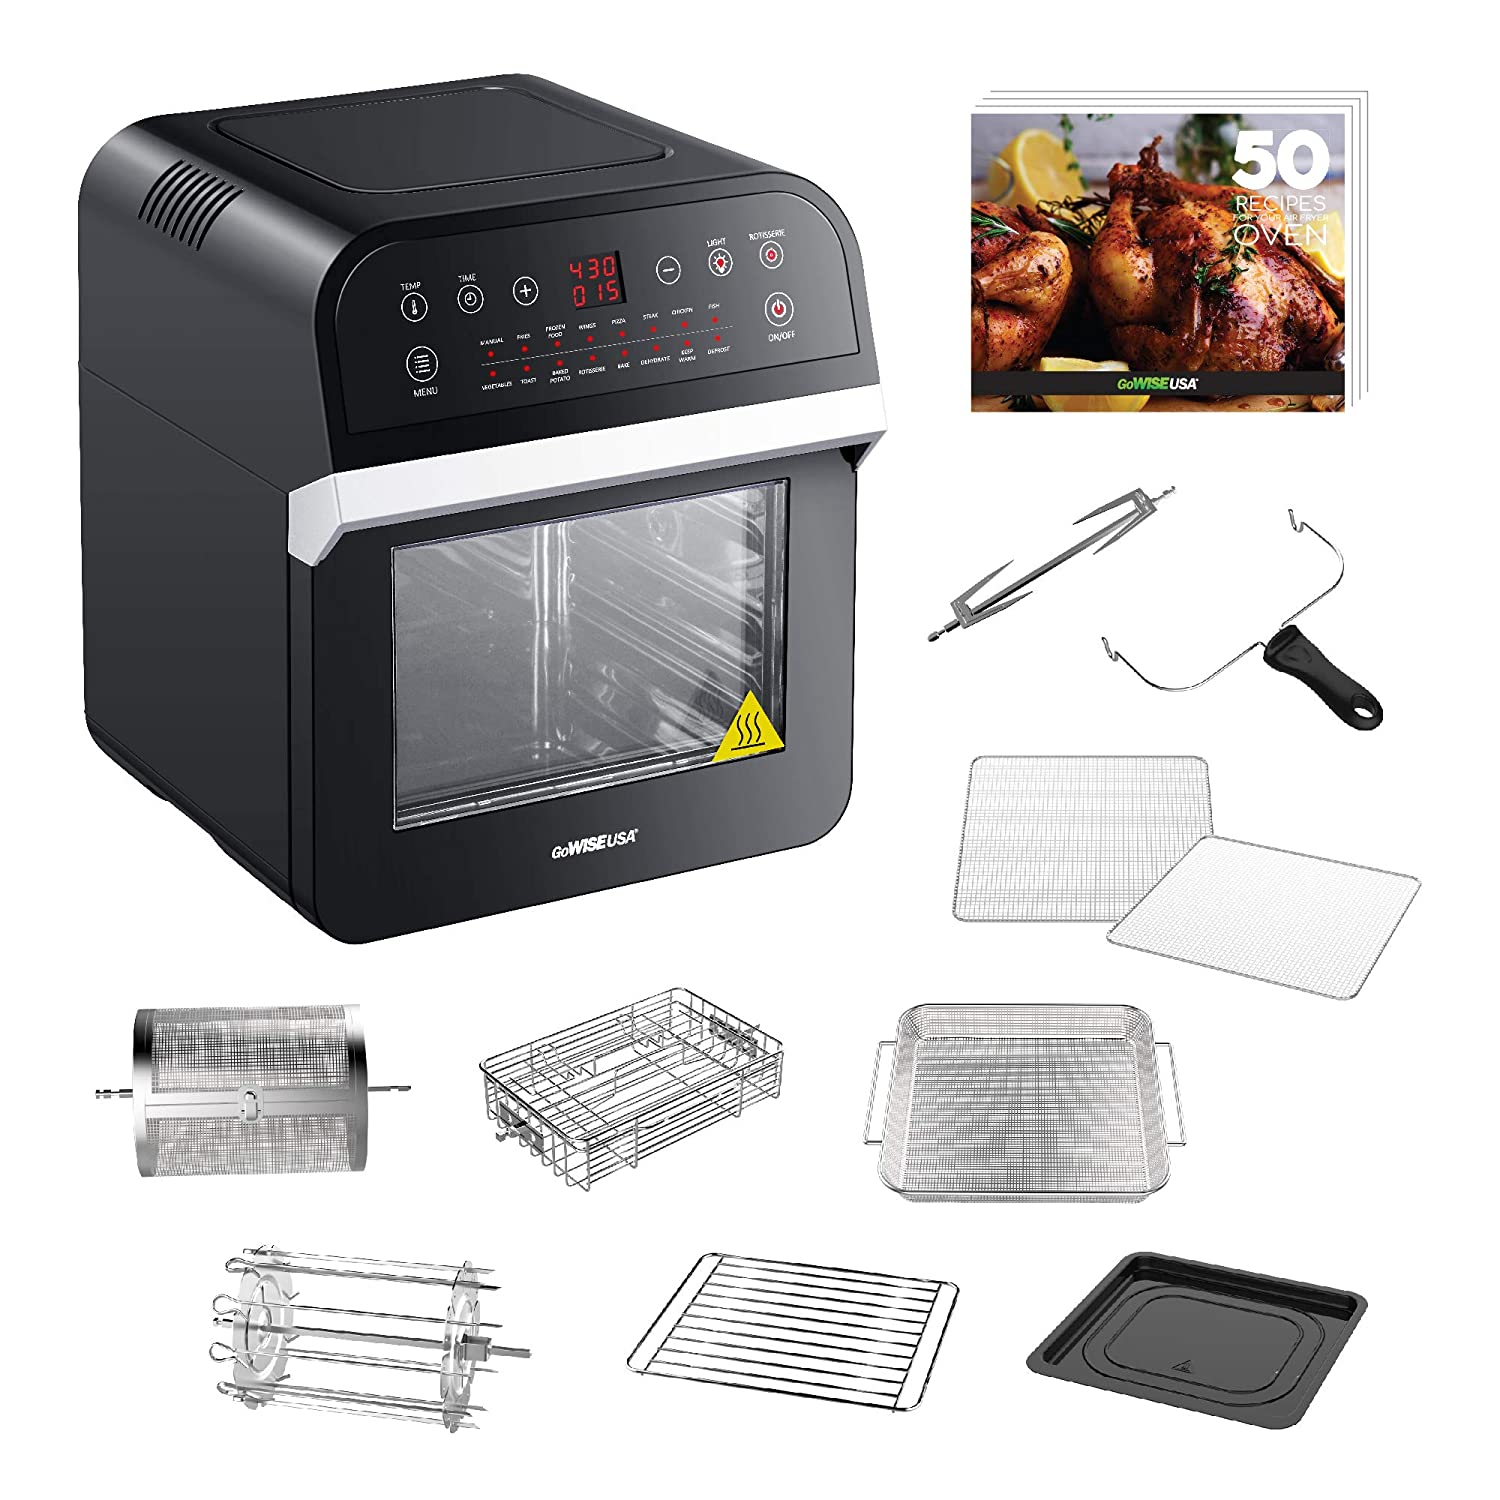 GoWISE USA GW44800-O Deluxe 12.7-Quarts 15-in-1 Electric Air Fryer Oven w Rotisserie and Dehydrator 50 Recipes Black